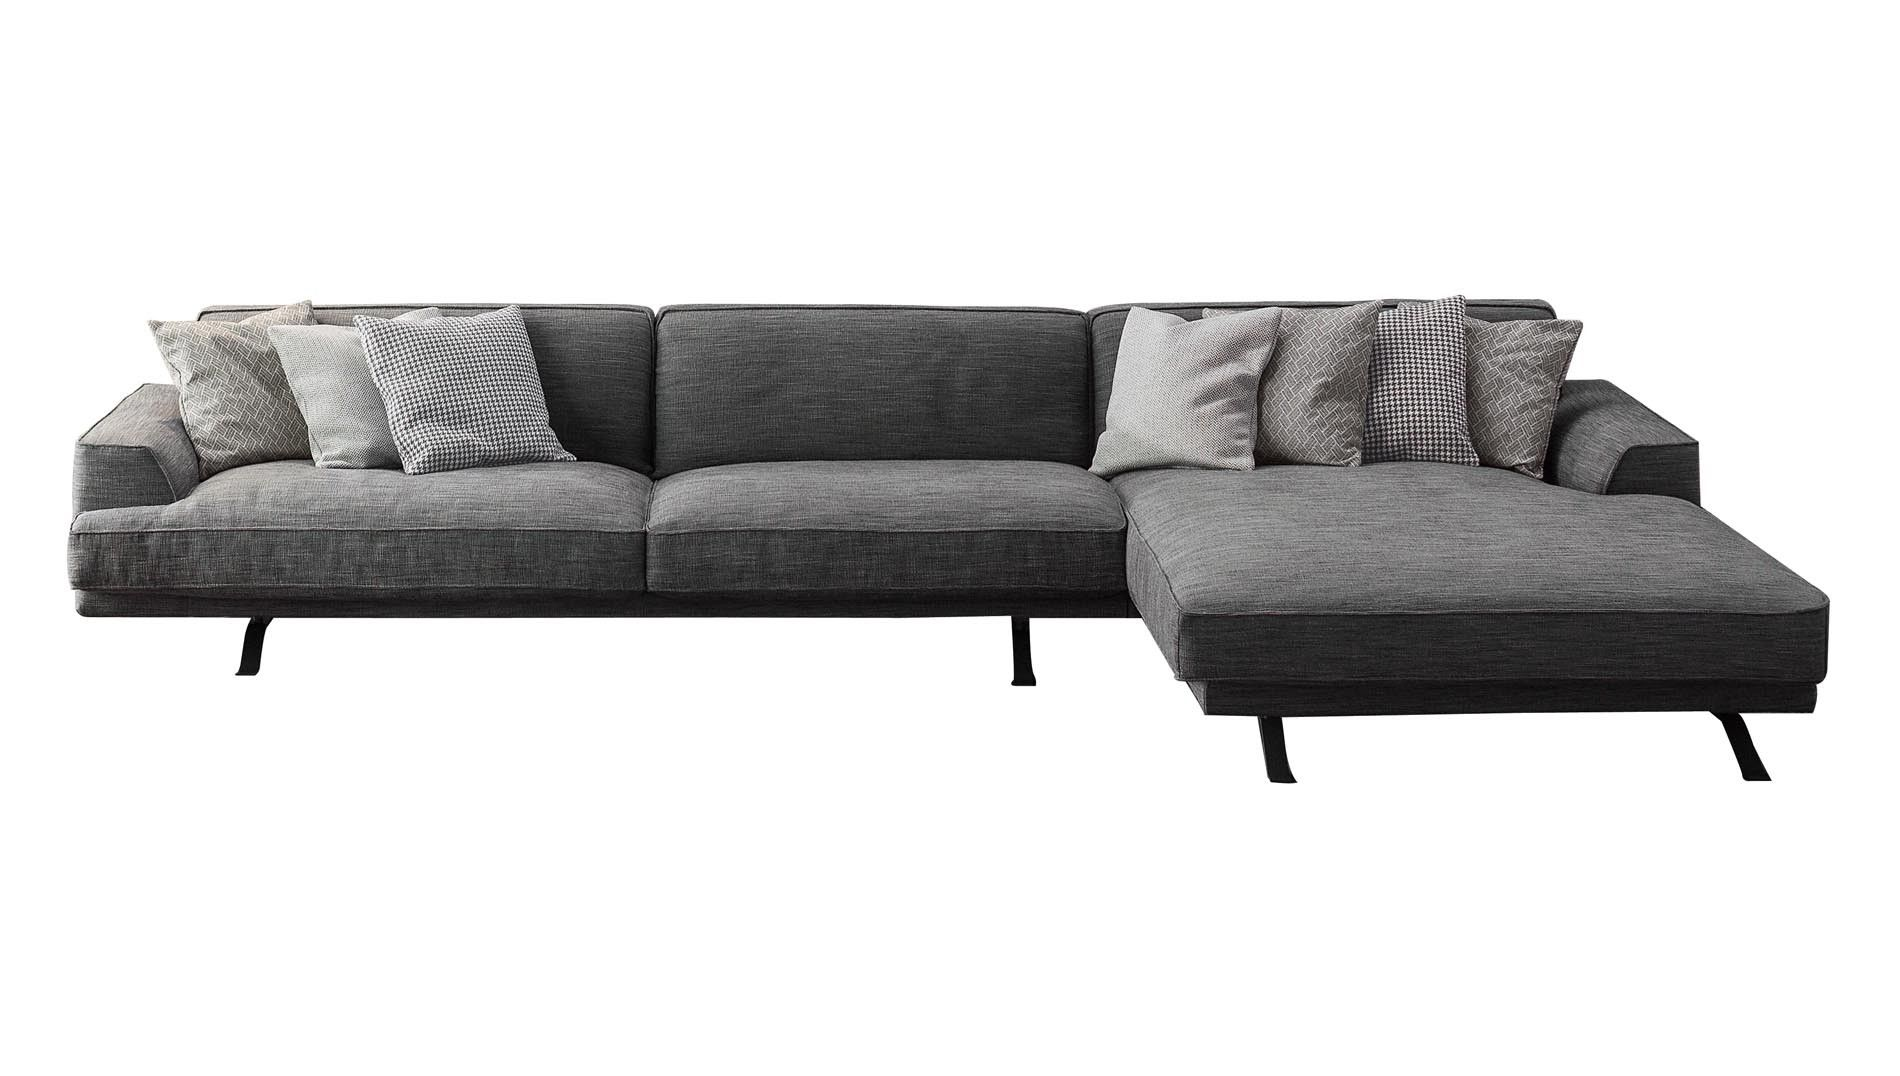 Seats En Sofa Arnhem Bonaldo Slab Corner Sofa Buy Online At Luxdeco Objects